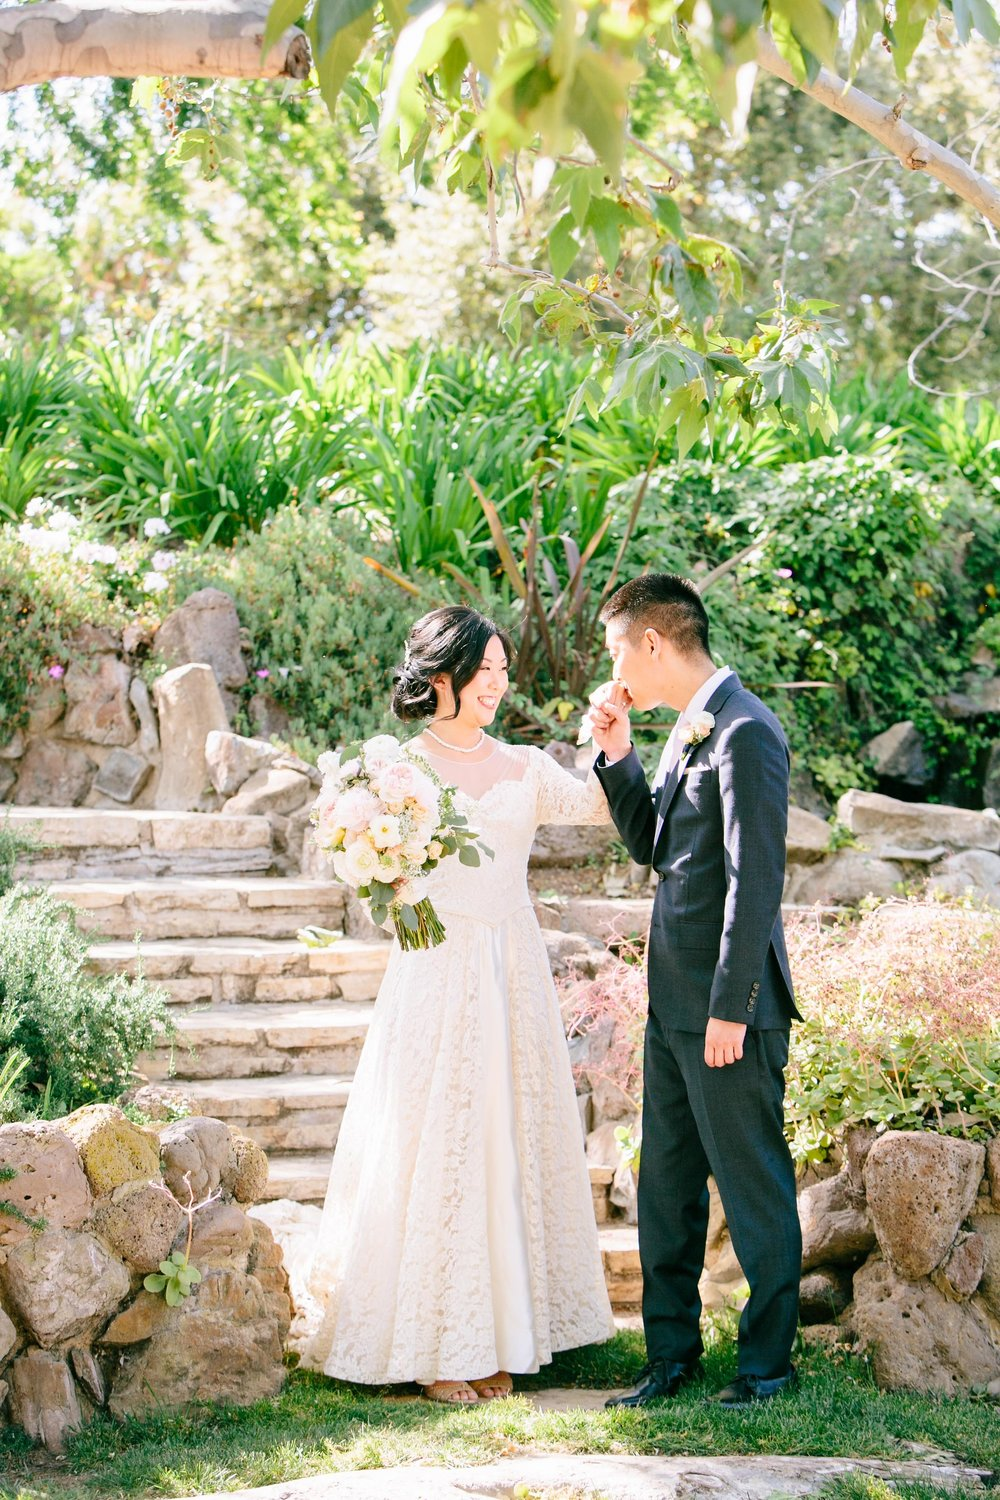 Quail Ranch bride and groom